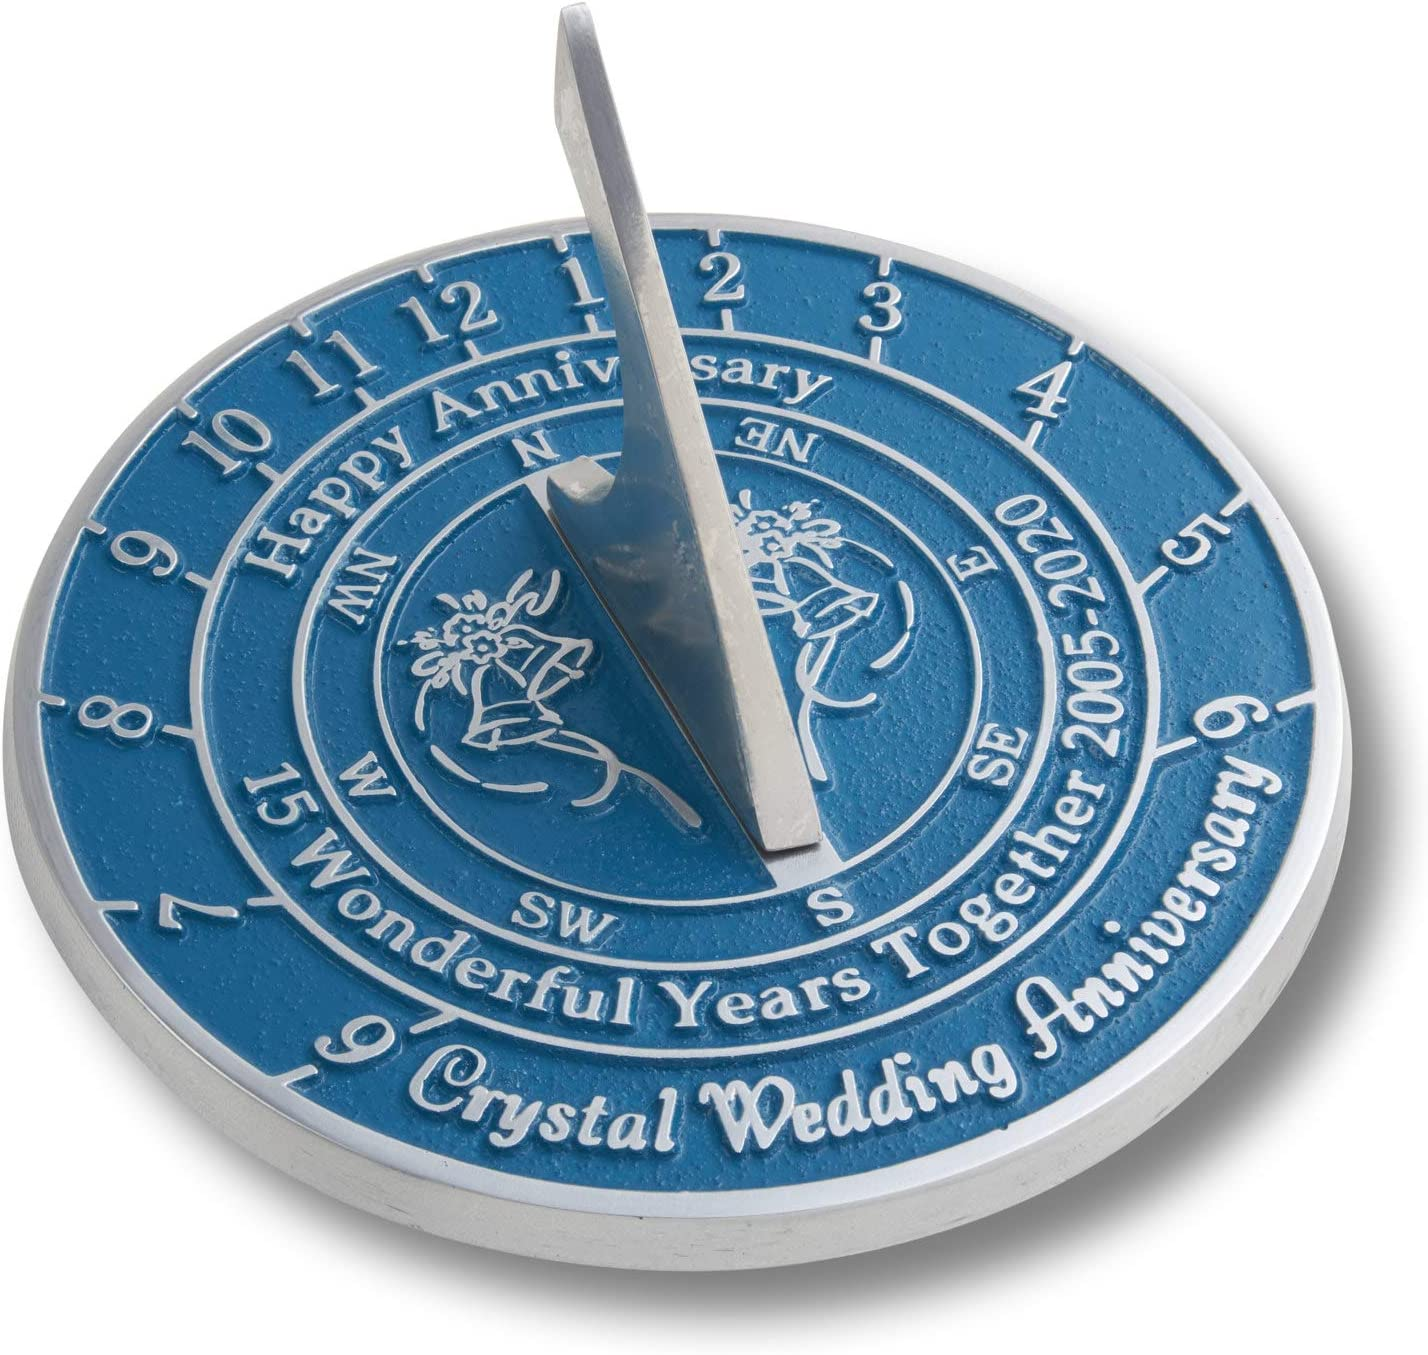 The Metal Foundry 15th Crystal 2020 Wedding Anniversary Sundial Gift. Solid Recycled Metal Gift Idea is A Great Present for Him, Her, Parents Or Couple On 15 Years of Marriage